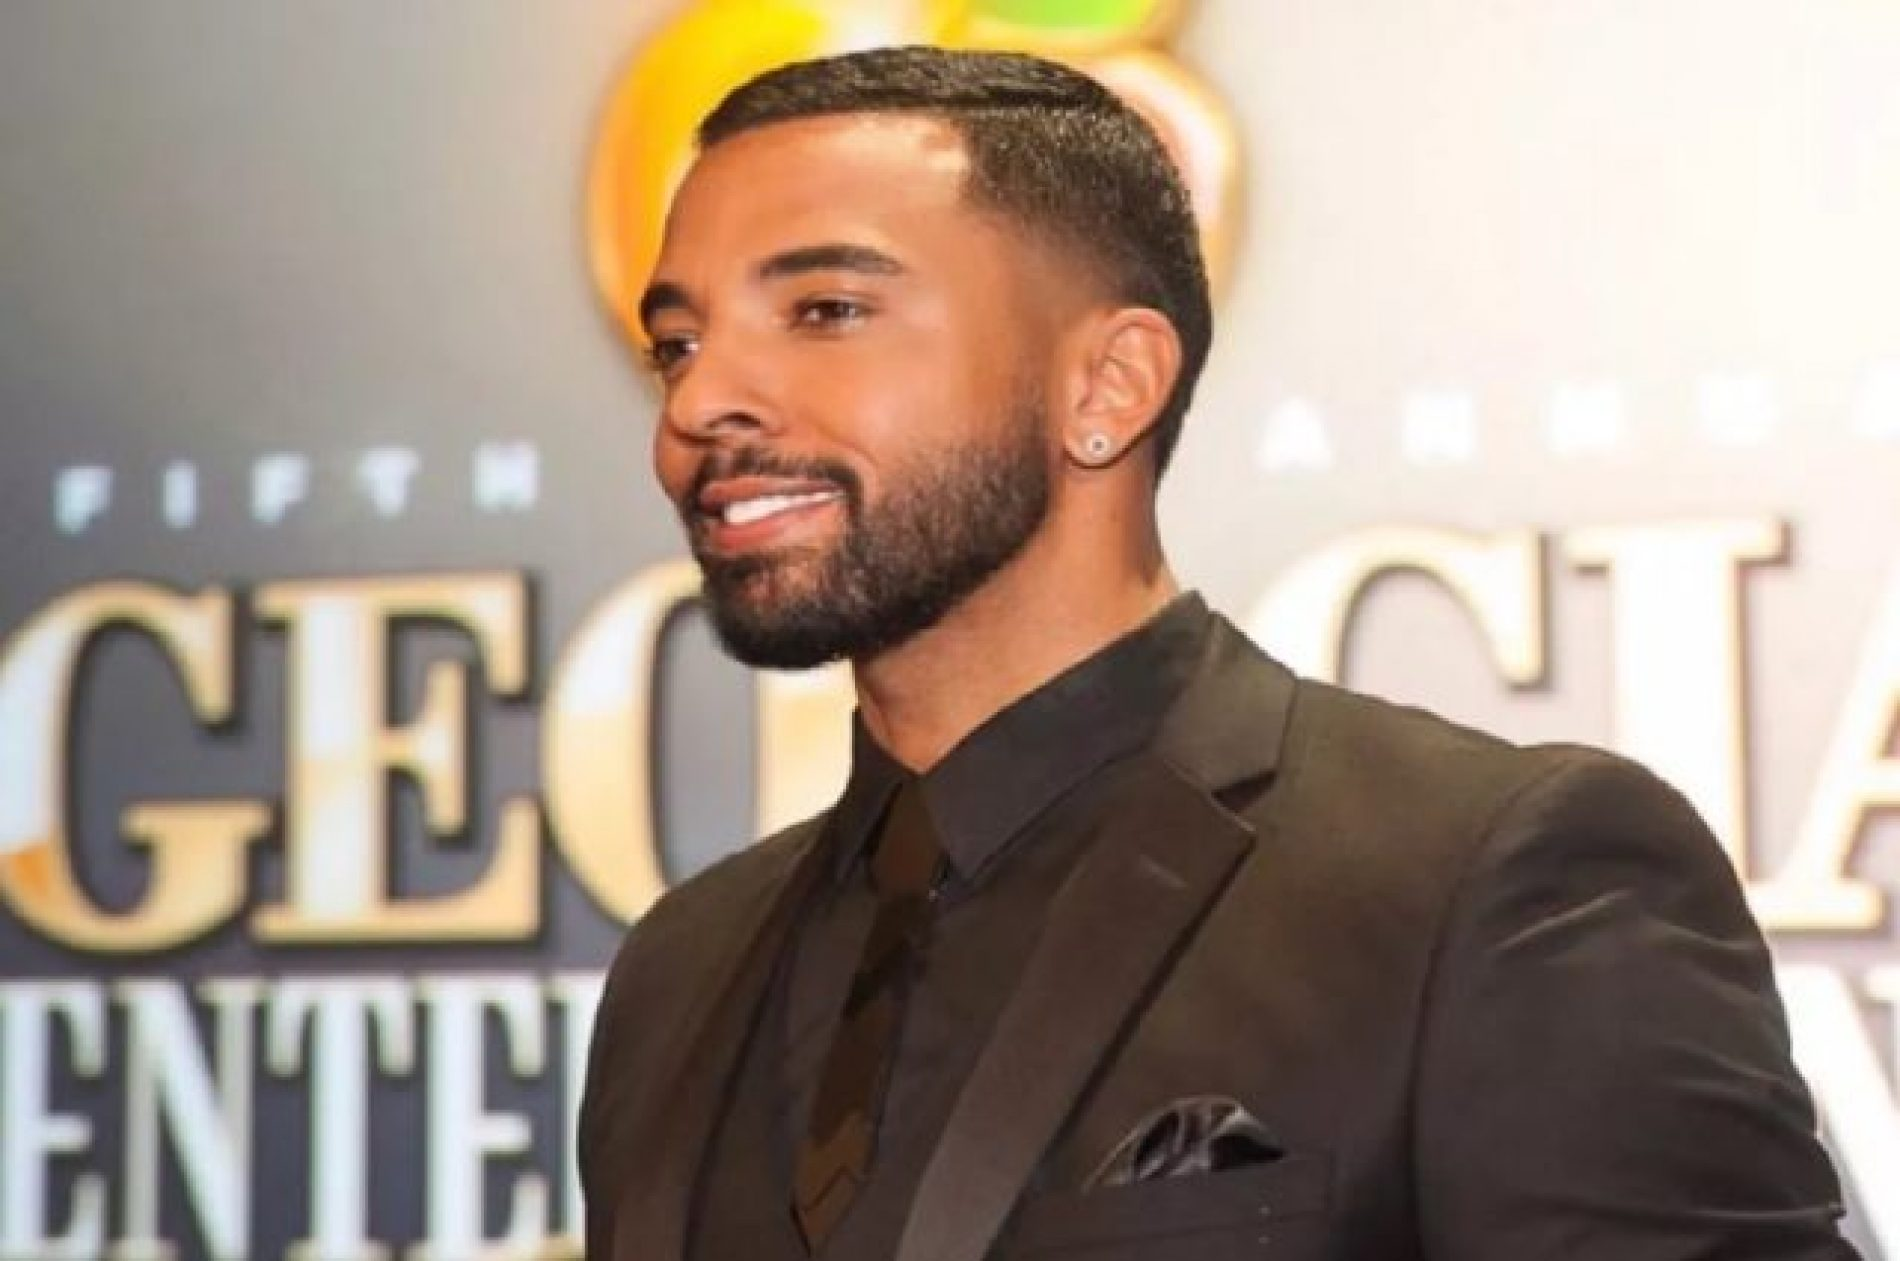 Actor Christian Keyes complains about too much gay attention